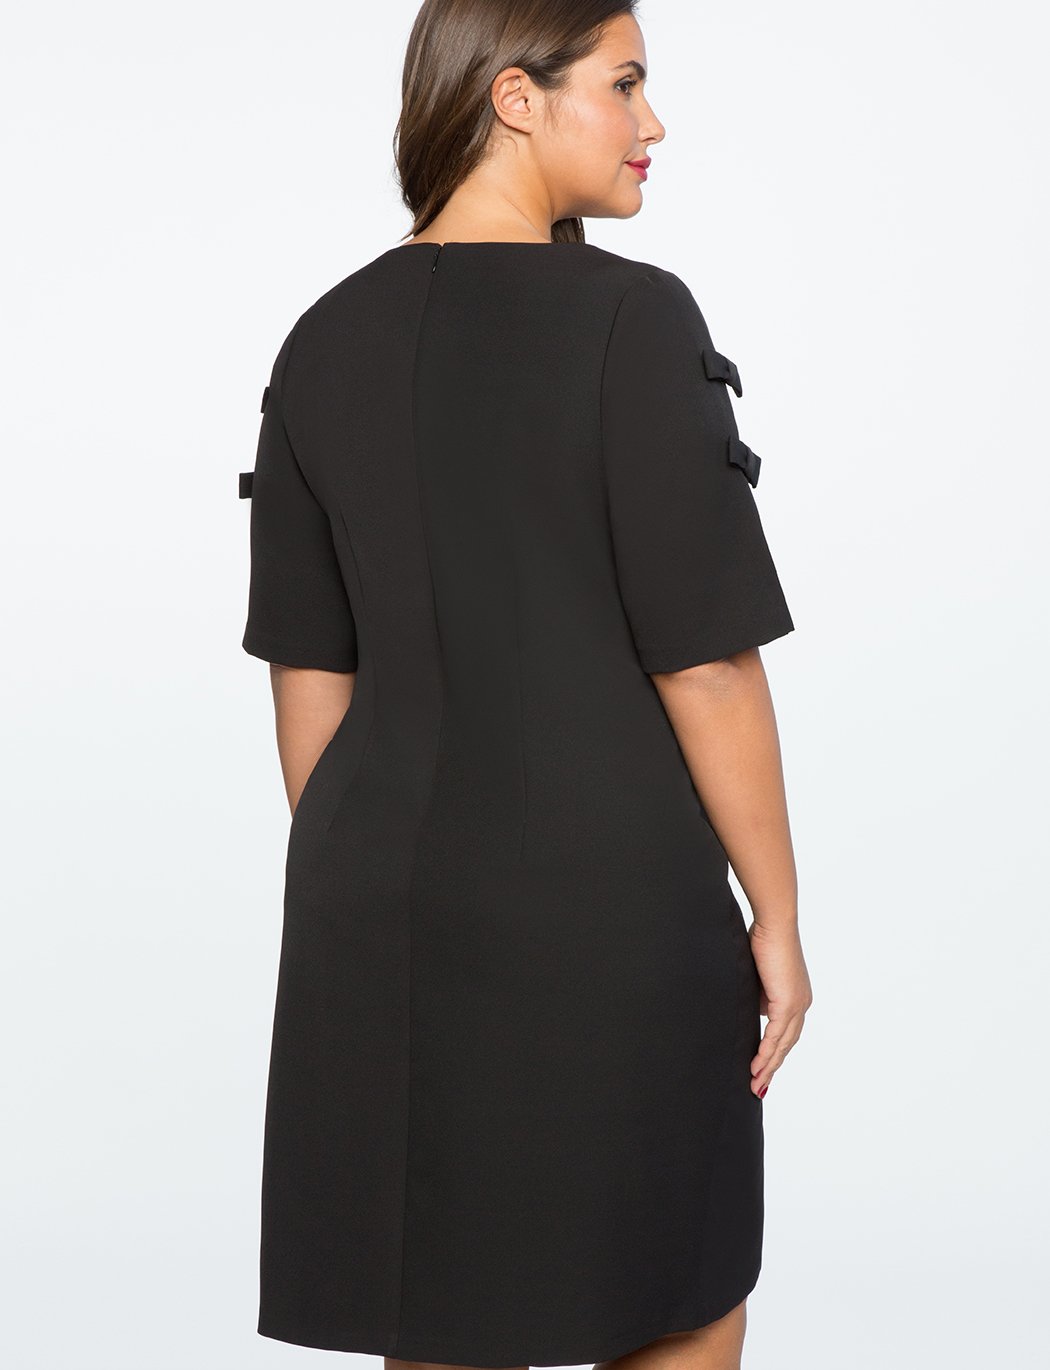 Slit Sleeve Dress with Bow Detail